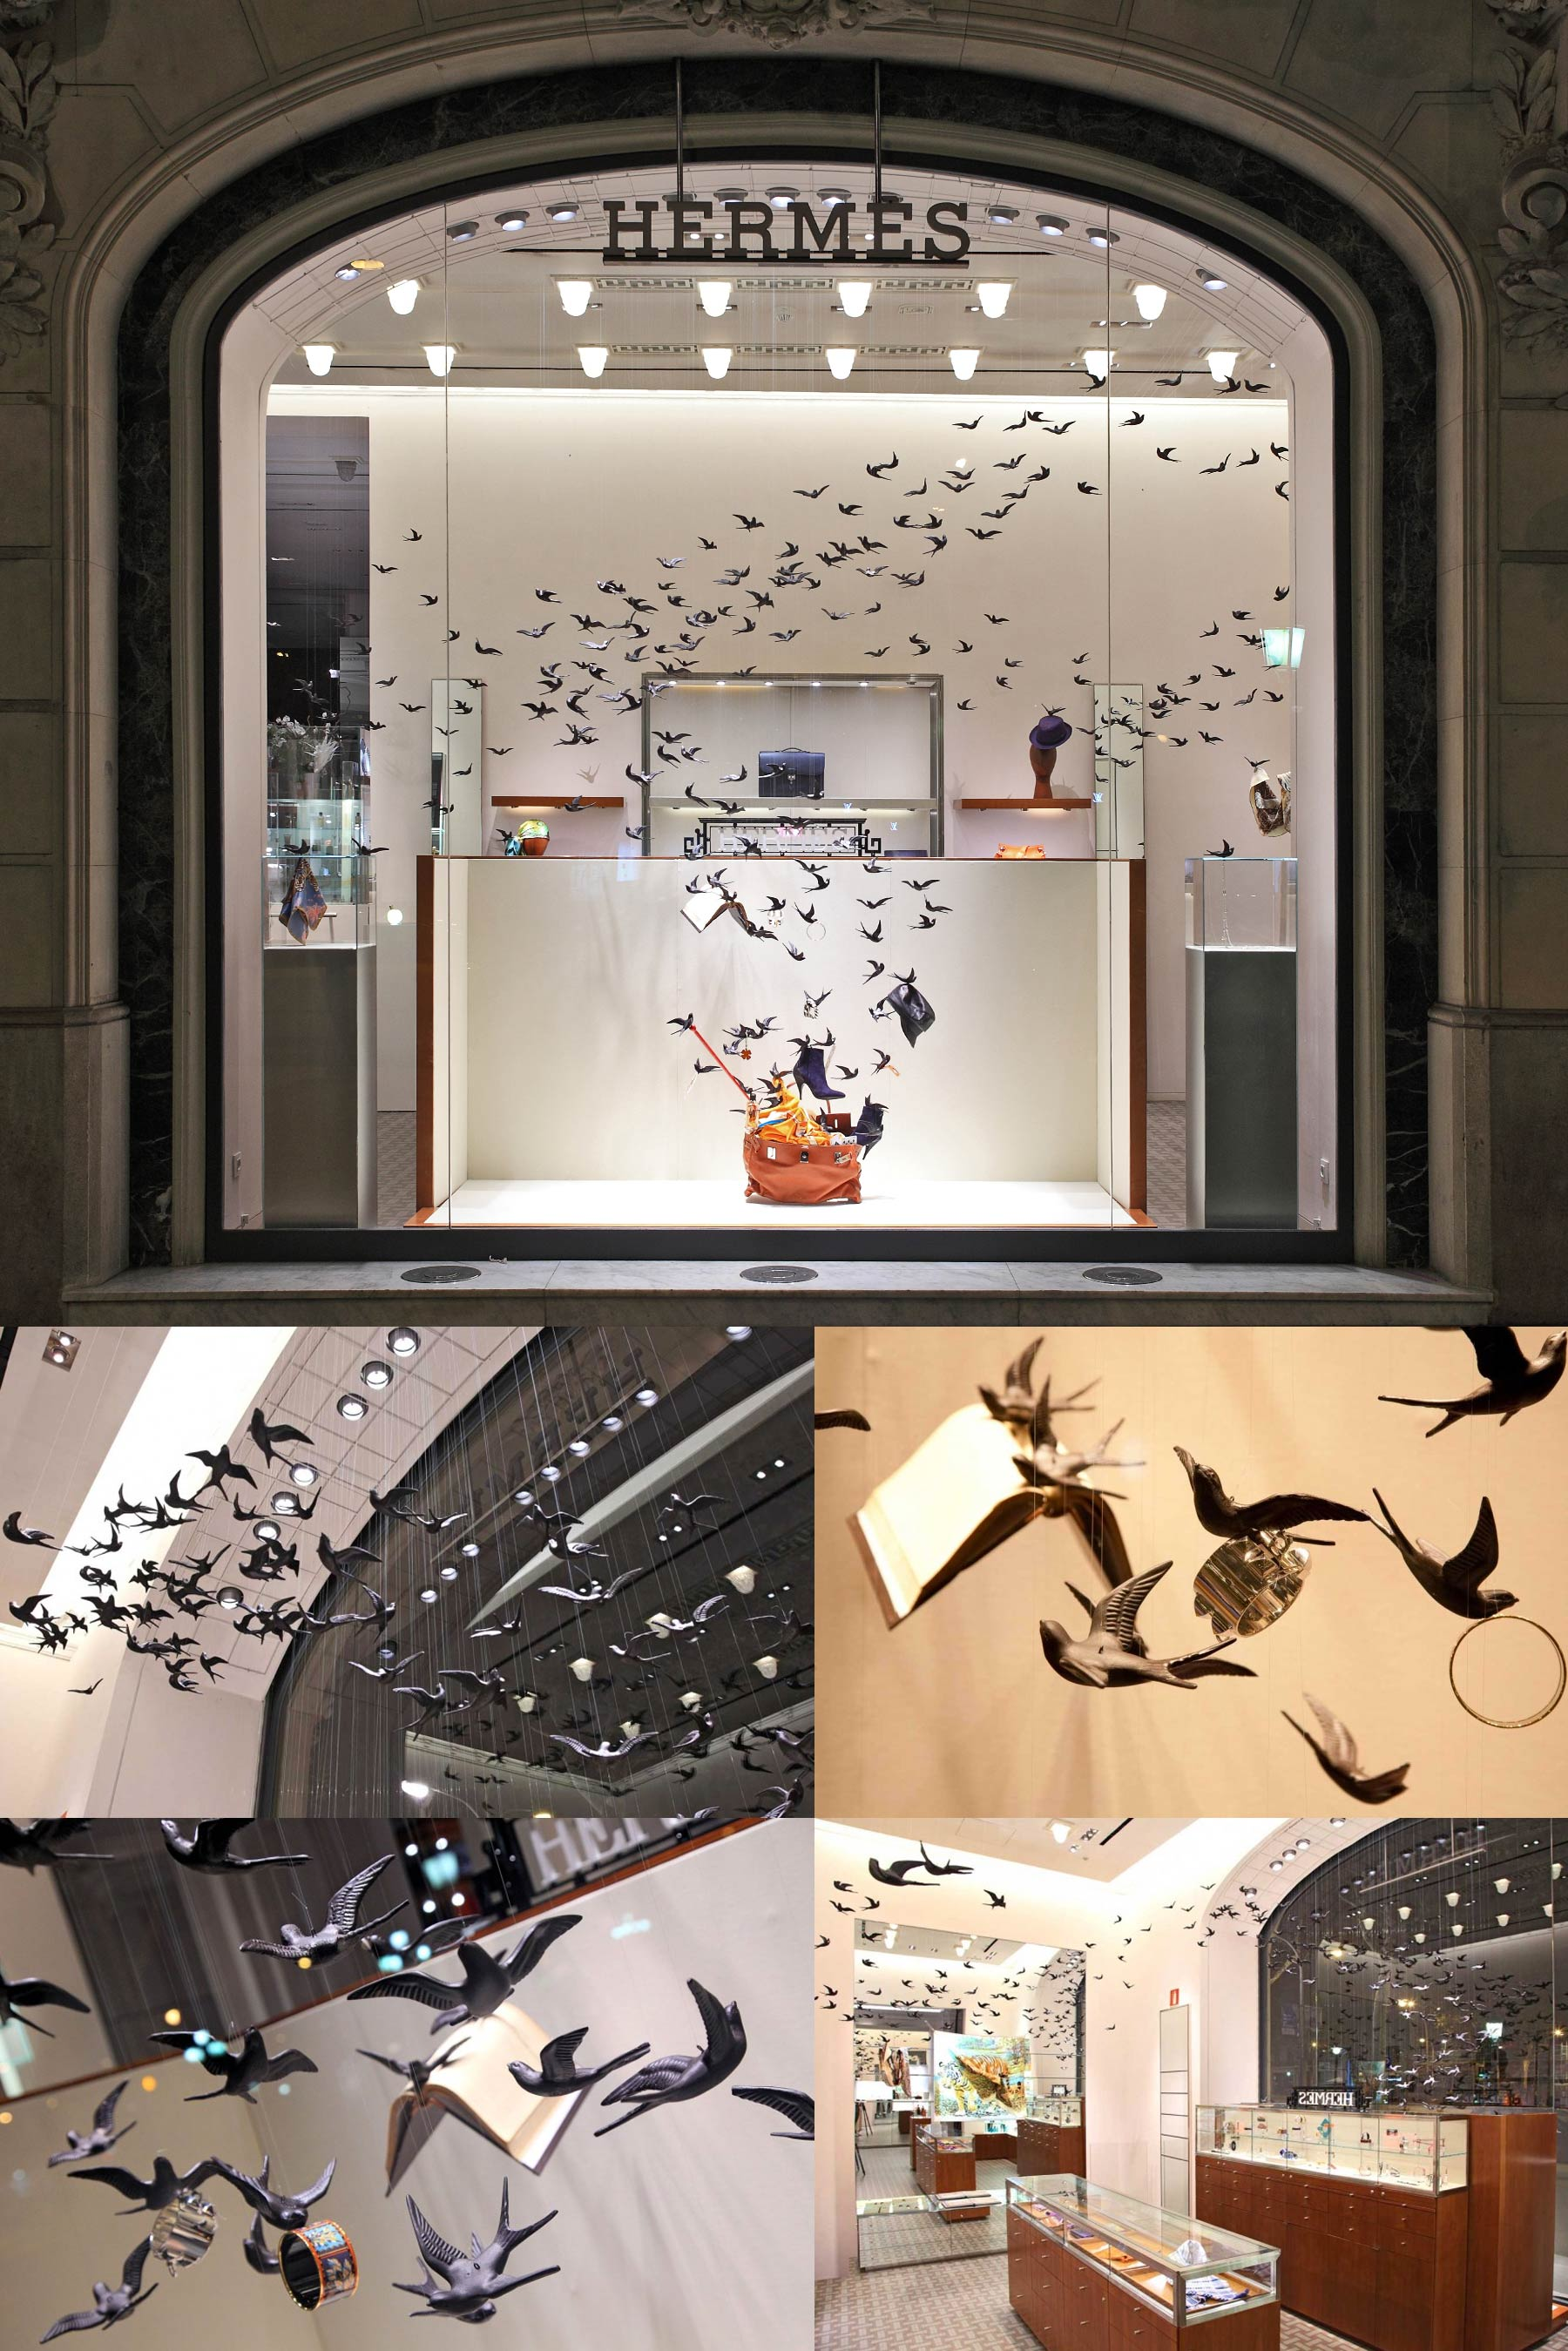 A shop window full of birds that swirl around. Some of them are holding objects by Hermés.